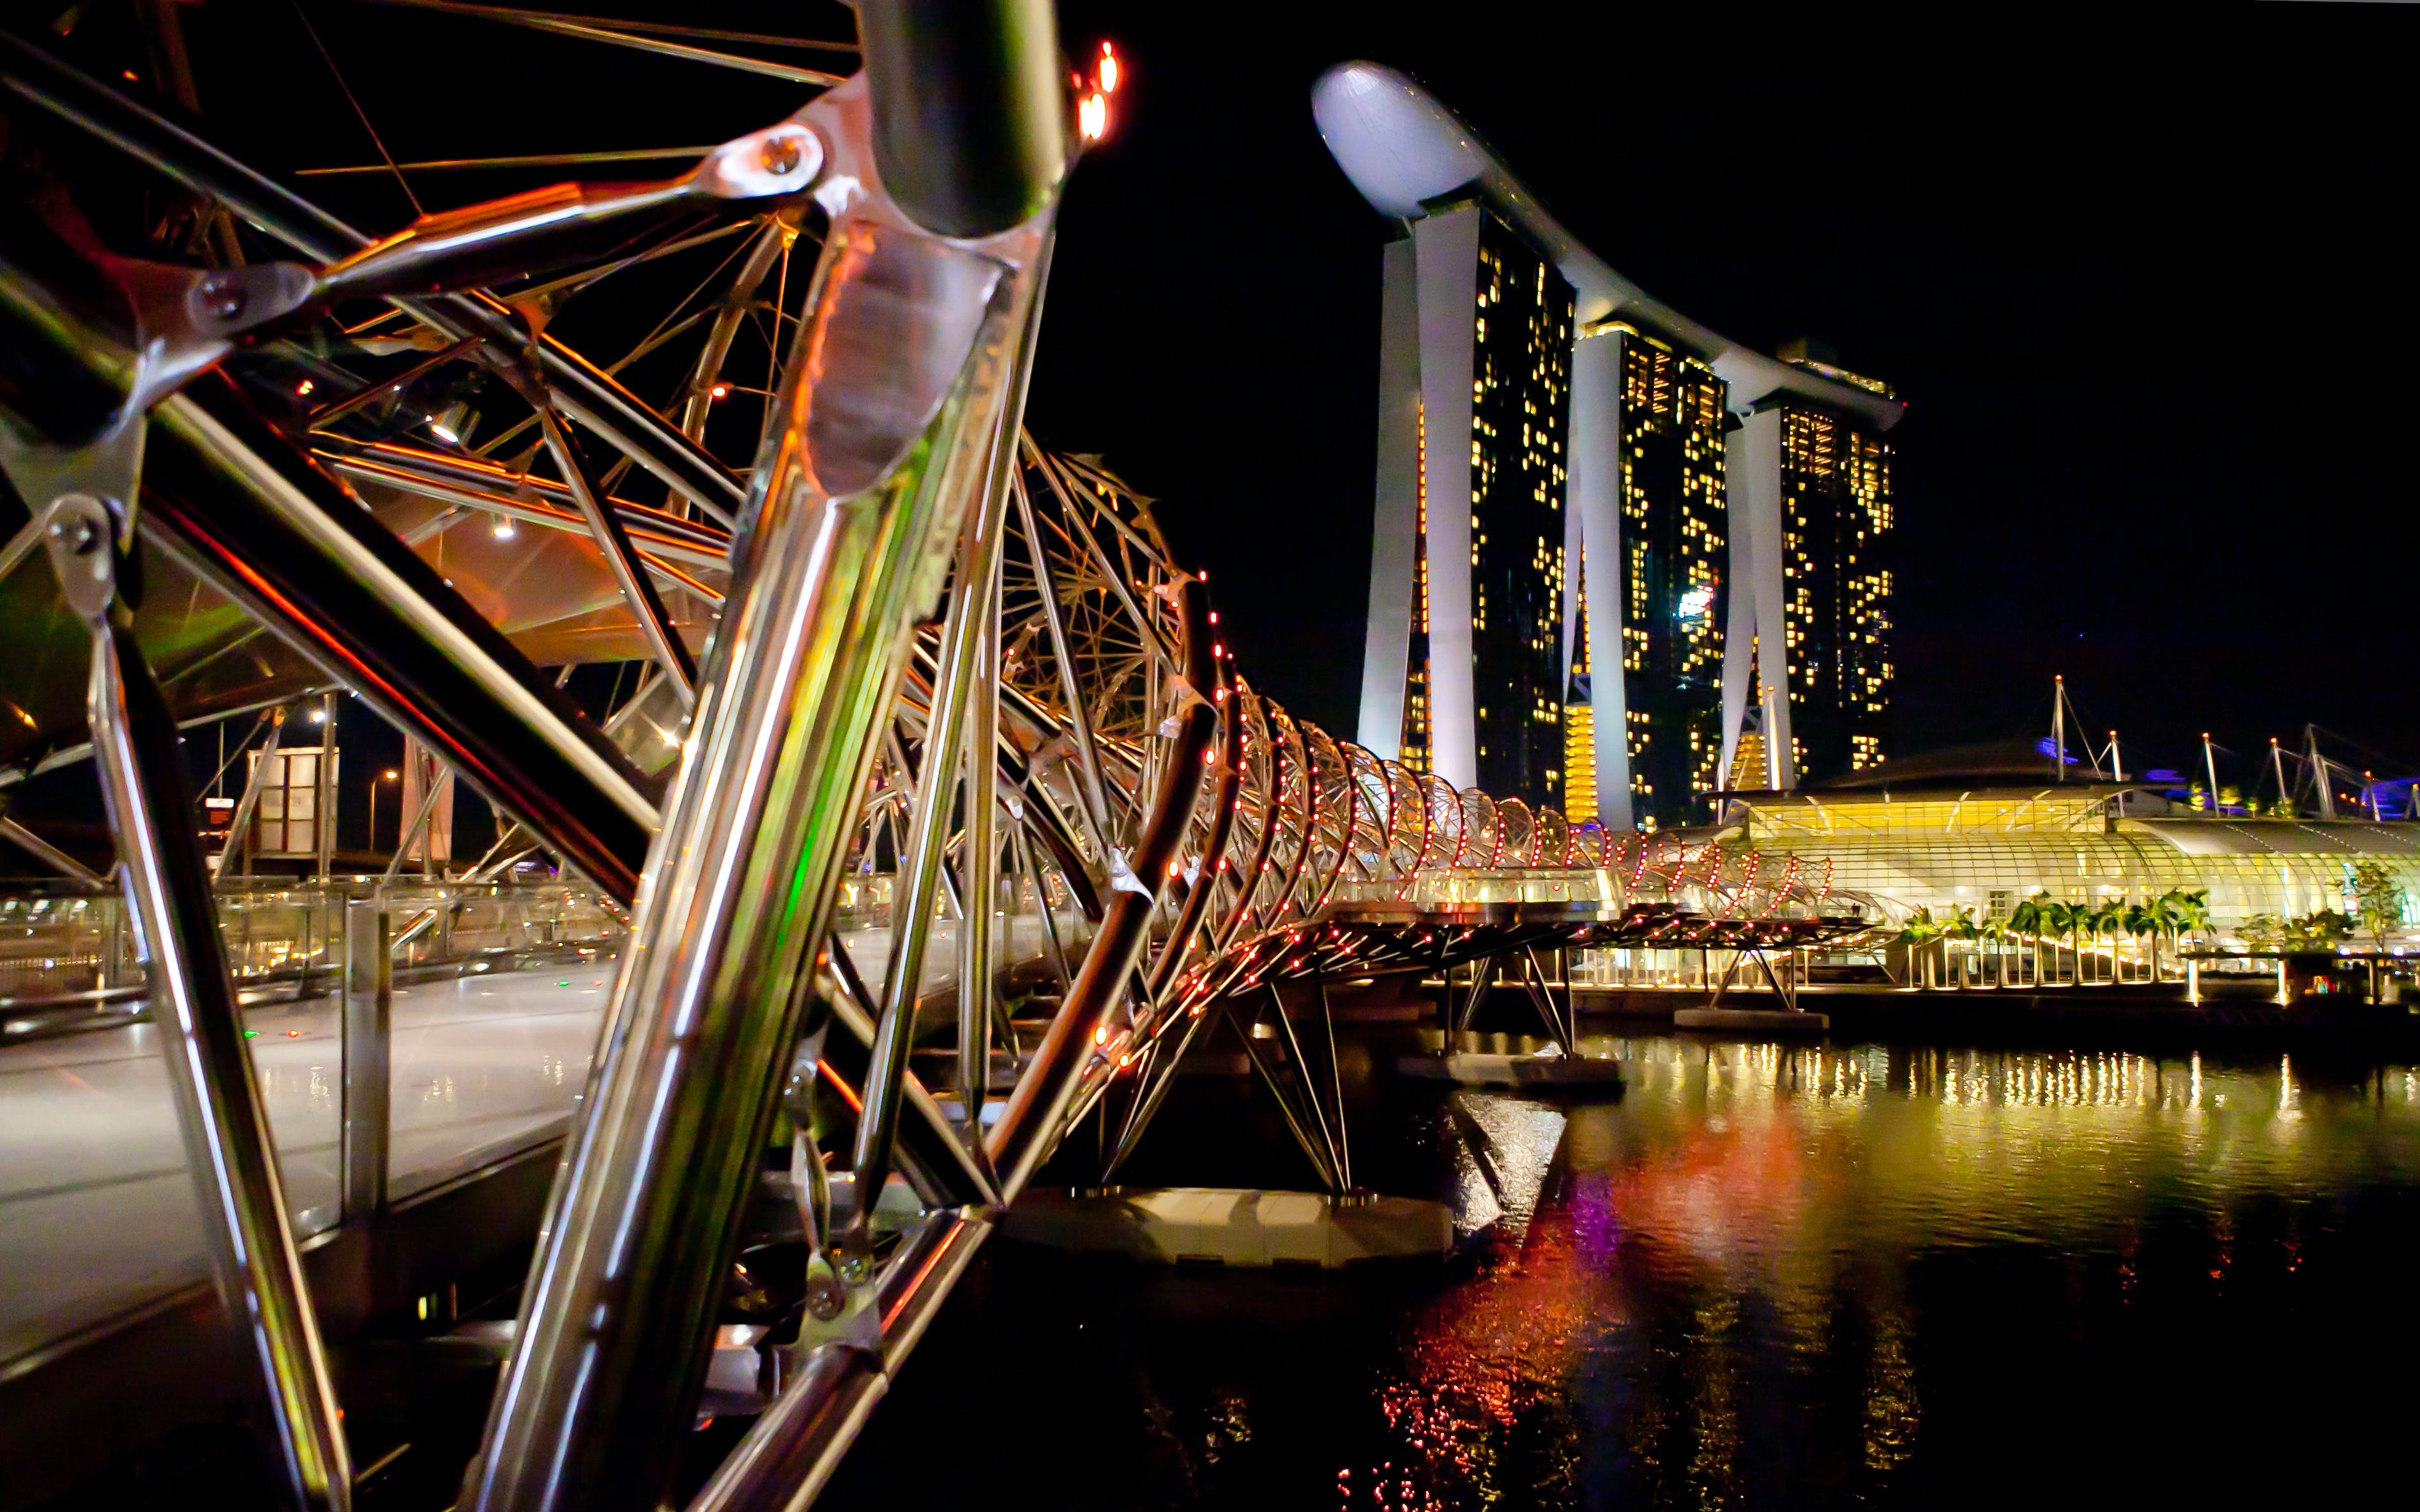 singapore hop on hop off - funvee night tour